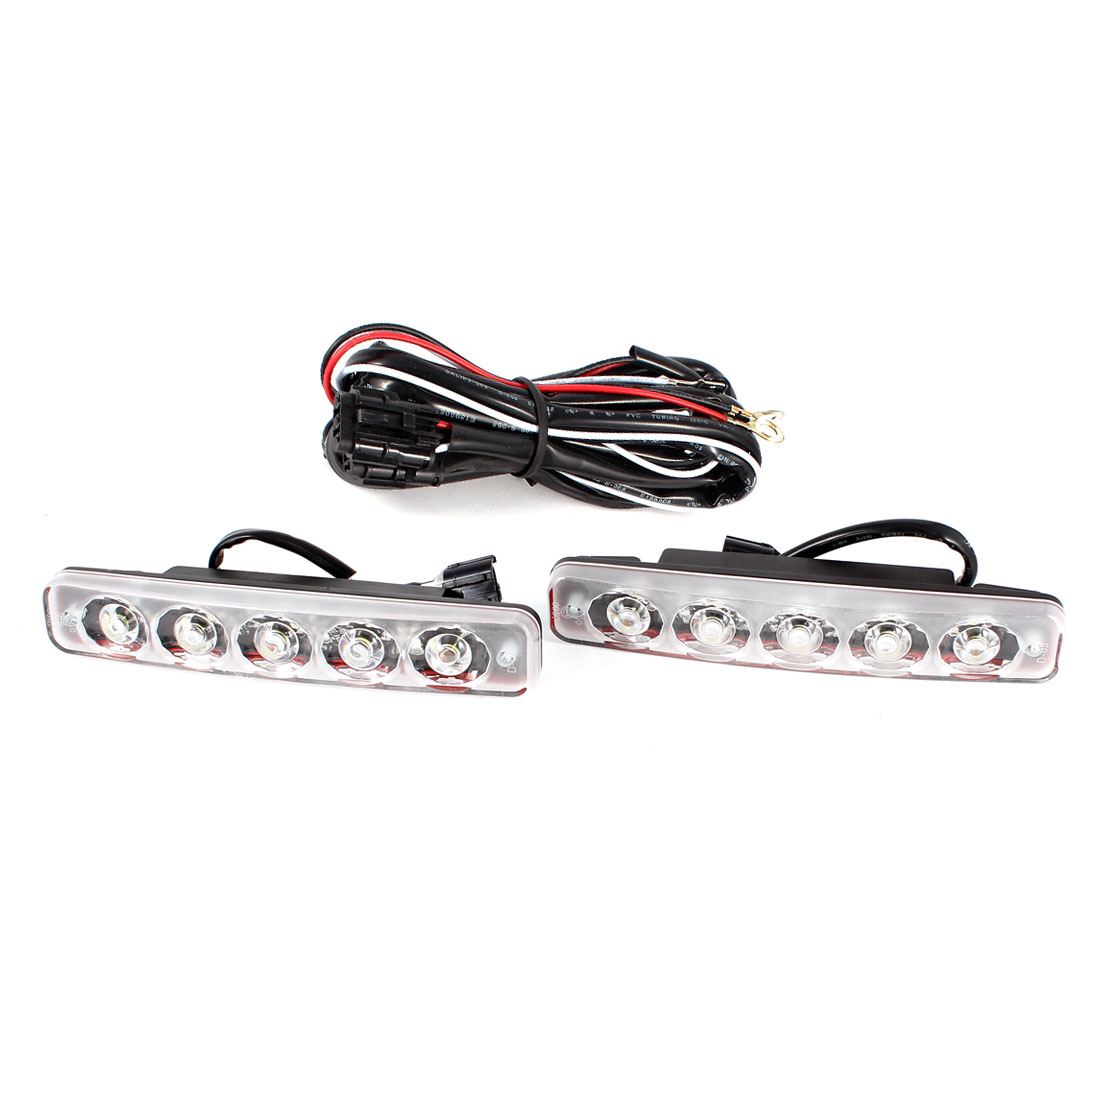 2 Pcs Super White 5 LED DRL Daytime Running Light Lamp DC 12V